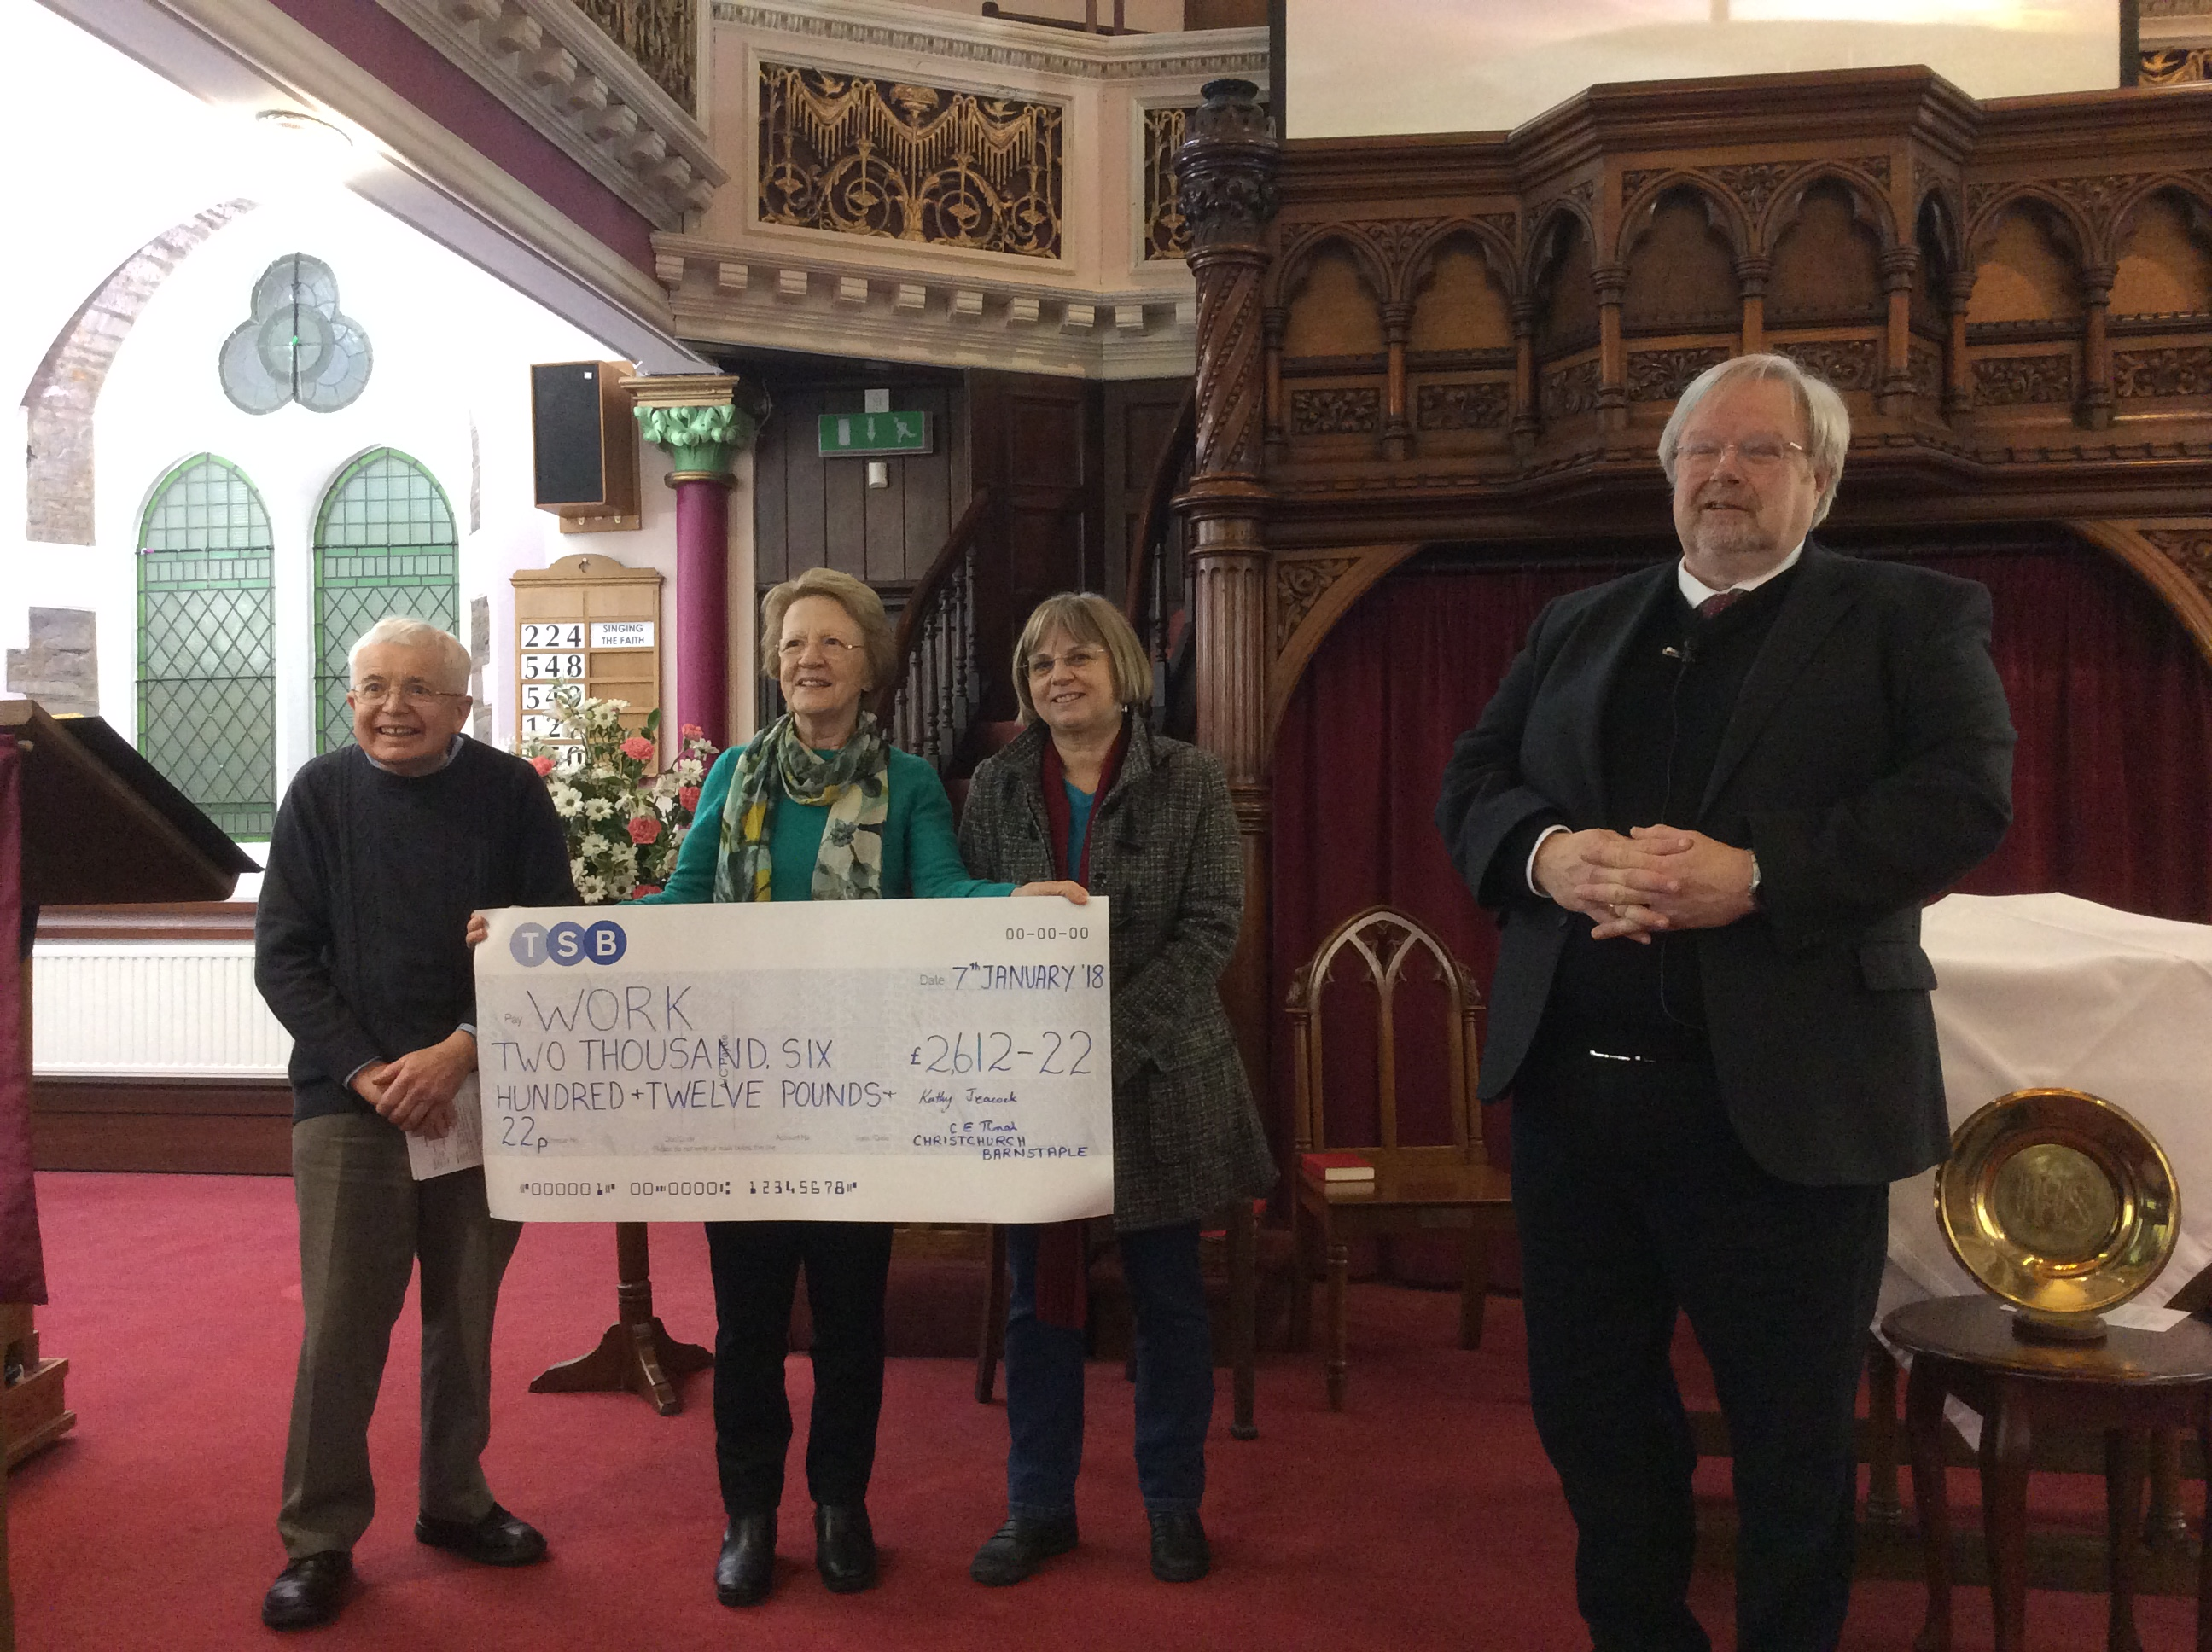 Rev. Don presenting a cheque for £2,612.22 – a magnificent total.